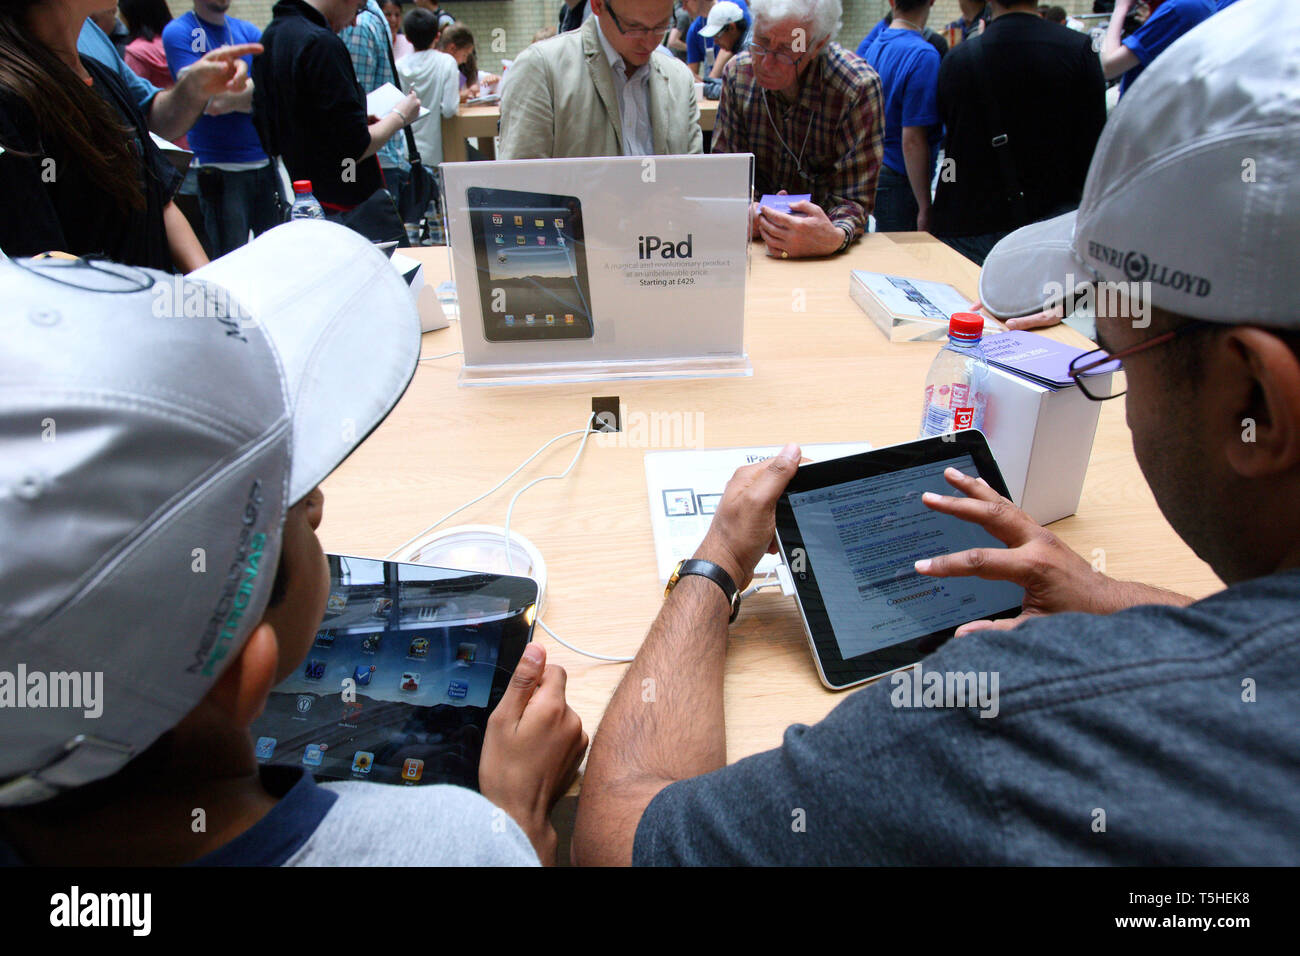 using  iPad at Apples Covent Garden store in London. 7 August 2010. - Stock Image